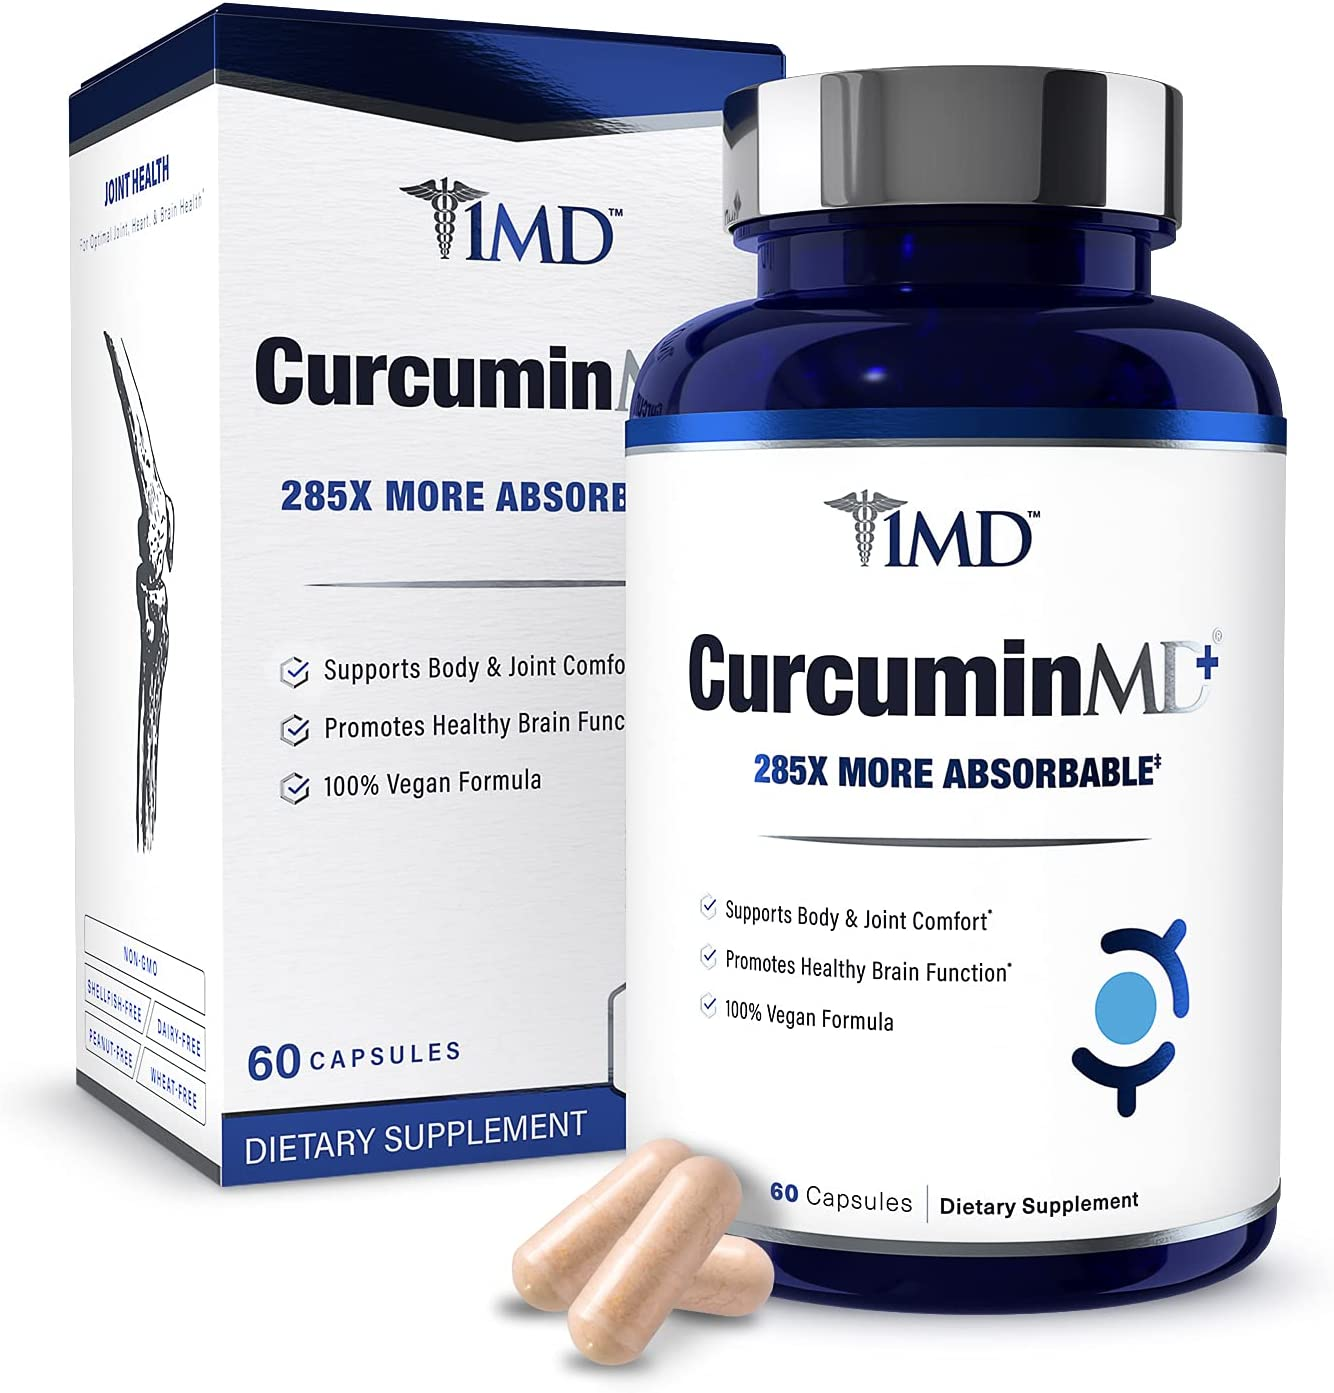 1MD CurcuminMD Plus - Turmeric Curcumin Serrata with Boswellia 70% OFF Outlet Manufacturer direct delivery